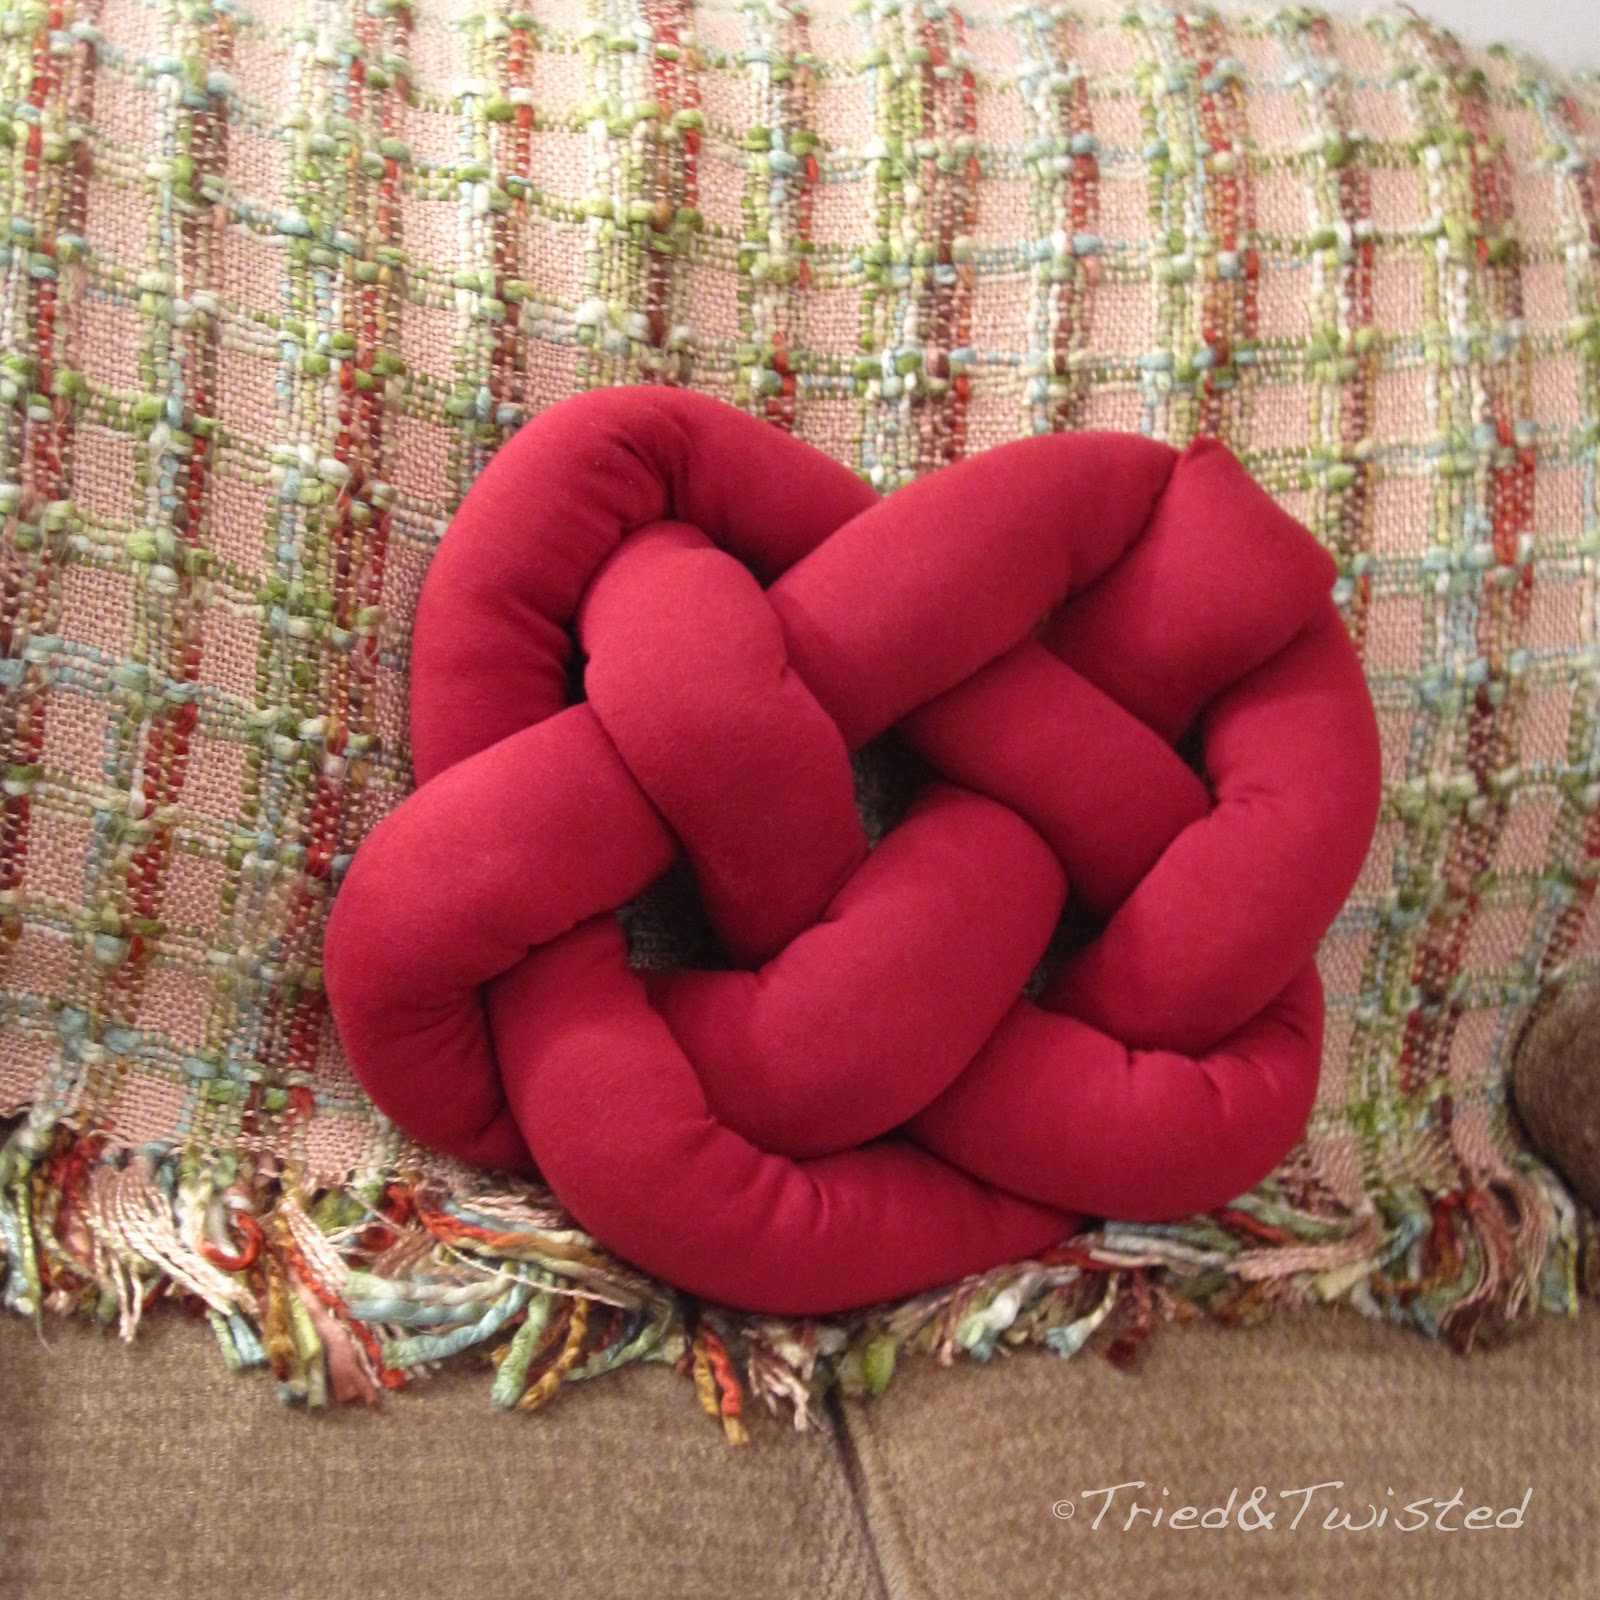 Tried And Twisted Diy Celtic Knot Heart Pillow